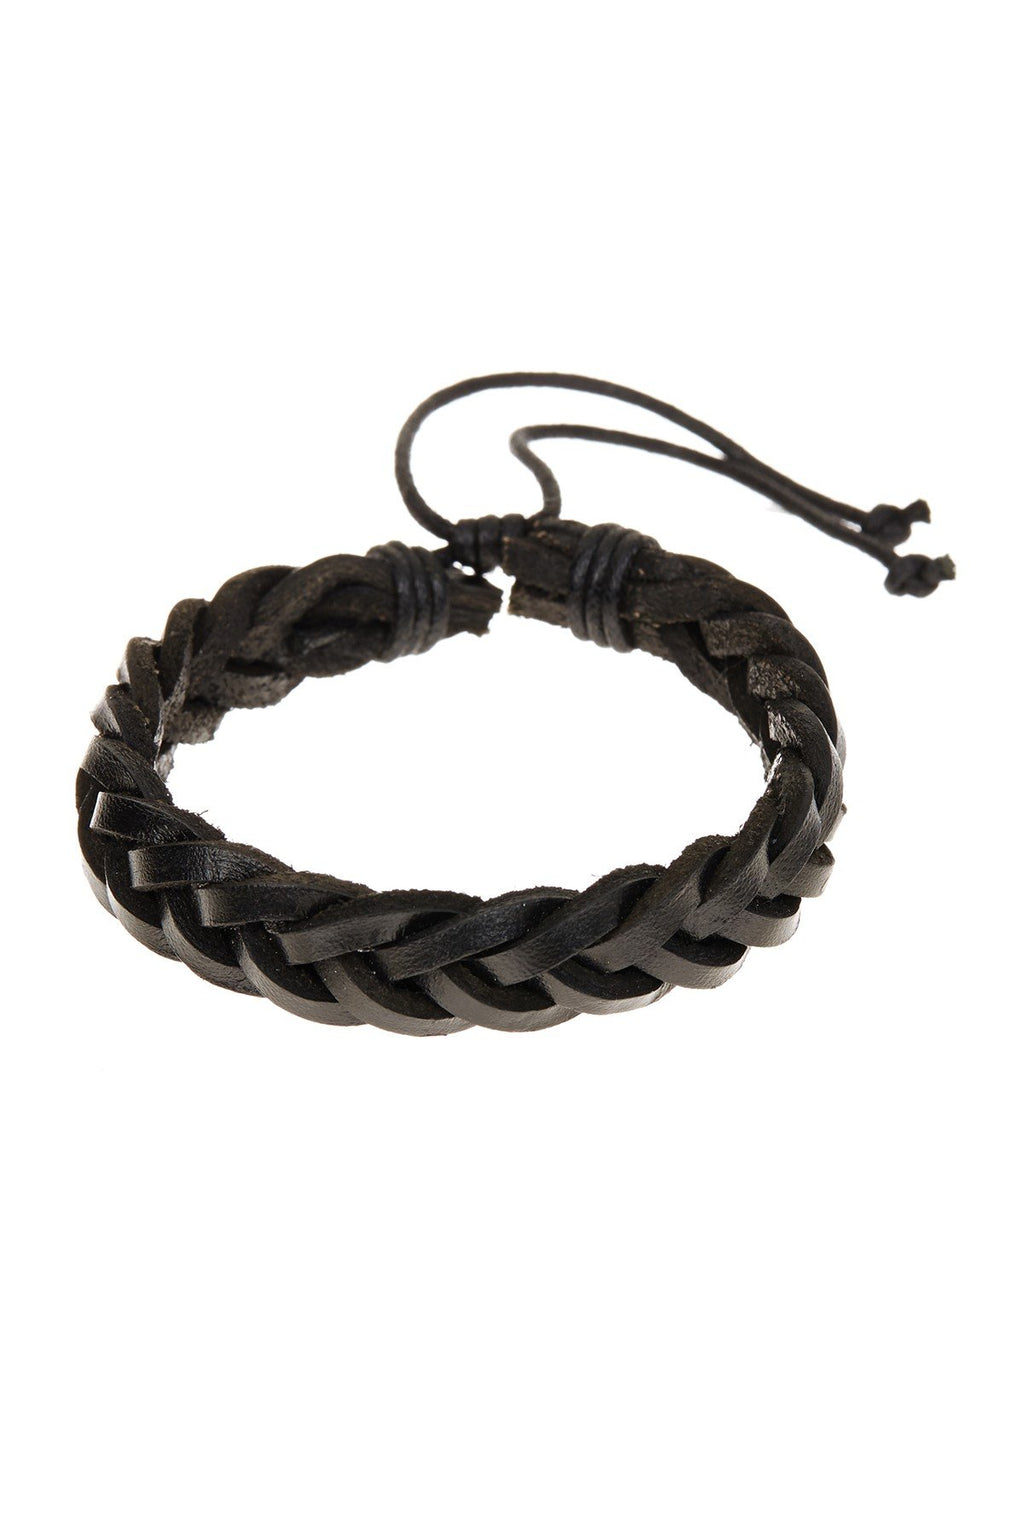 Black Woven Leather Adjustable Bracelet